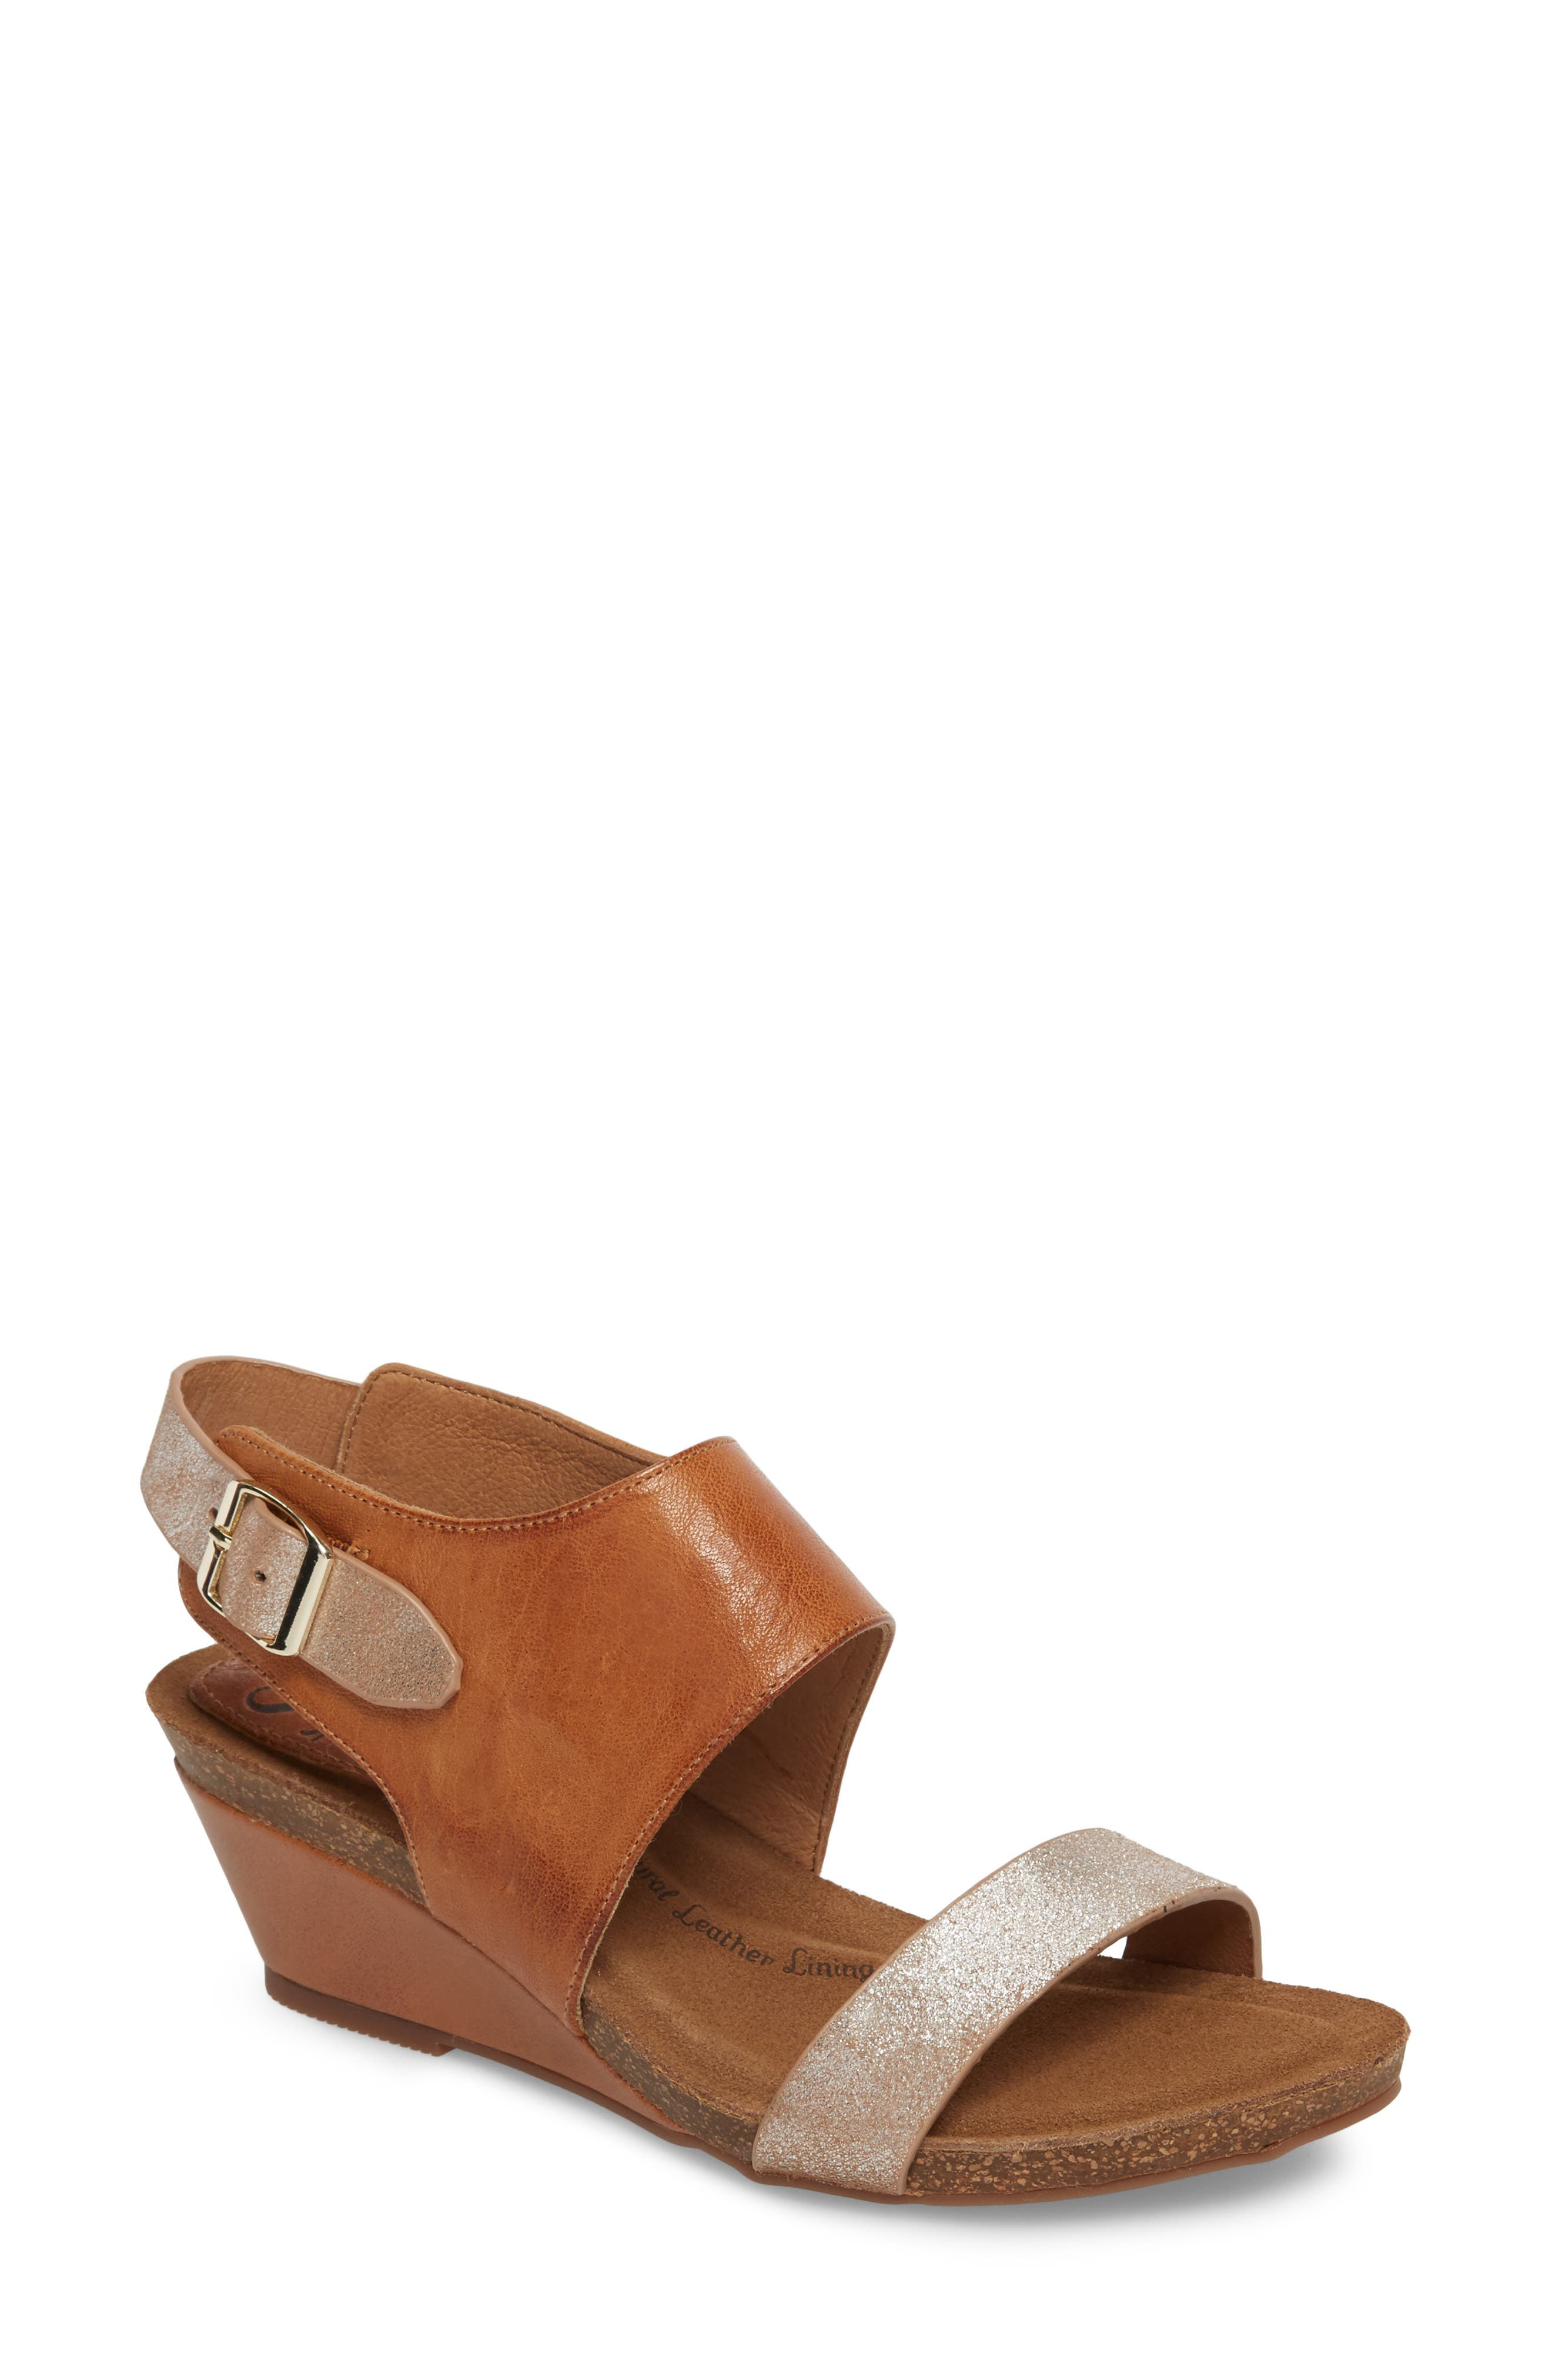 a357954afcd0c3 Sofft  Vanita  Leather Sandal